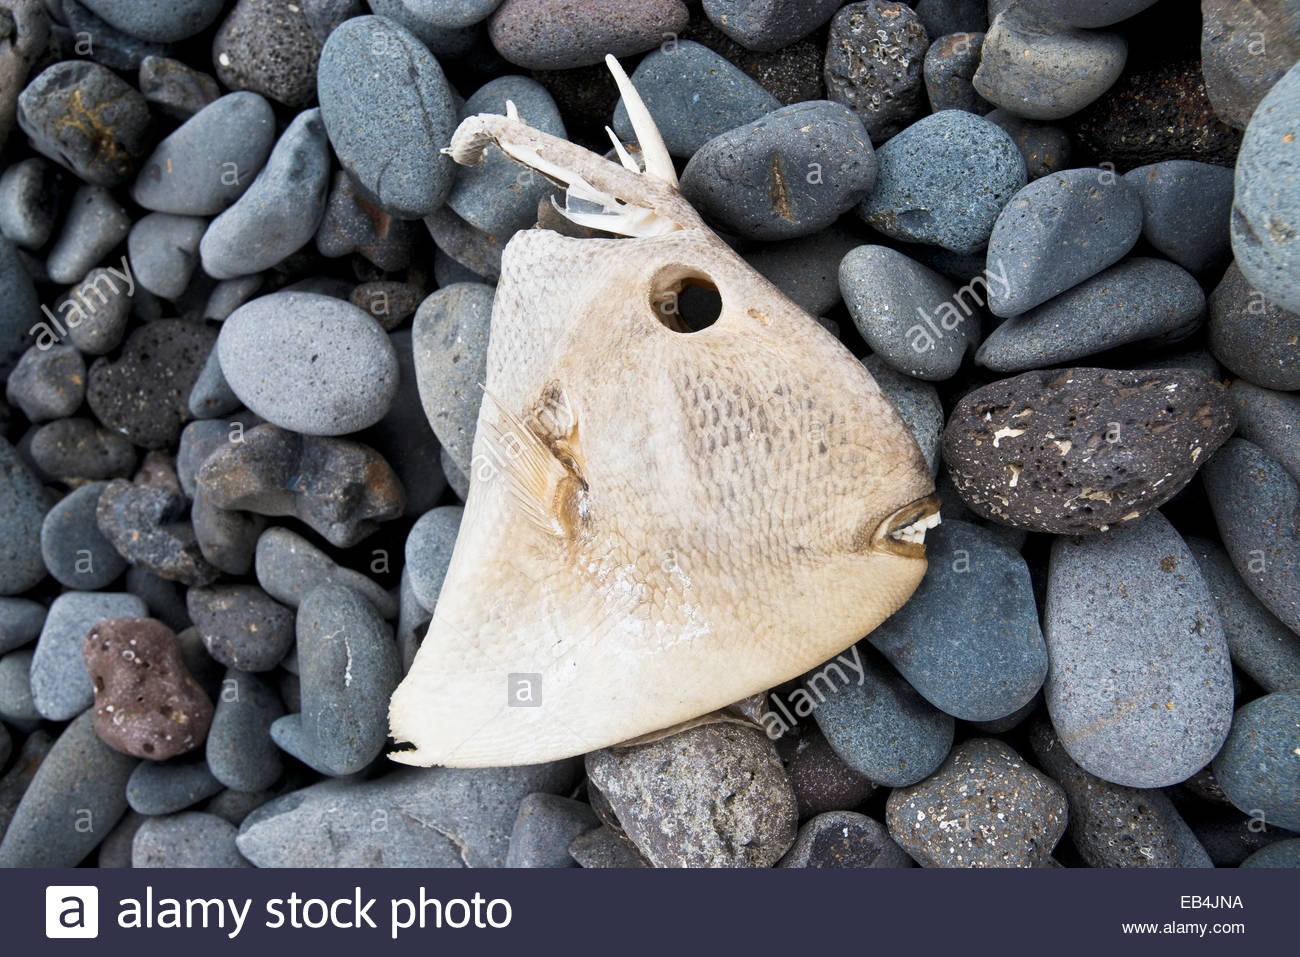 The skeletal remains of an oceanic triggerfish lie on a pebbled beach. - Stock Image